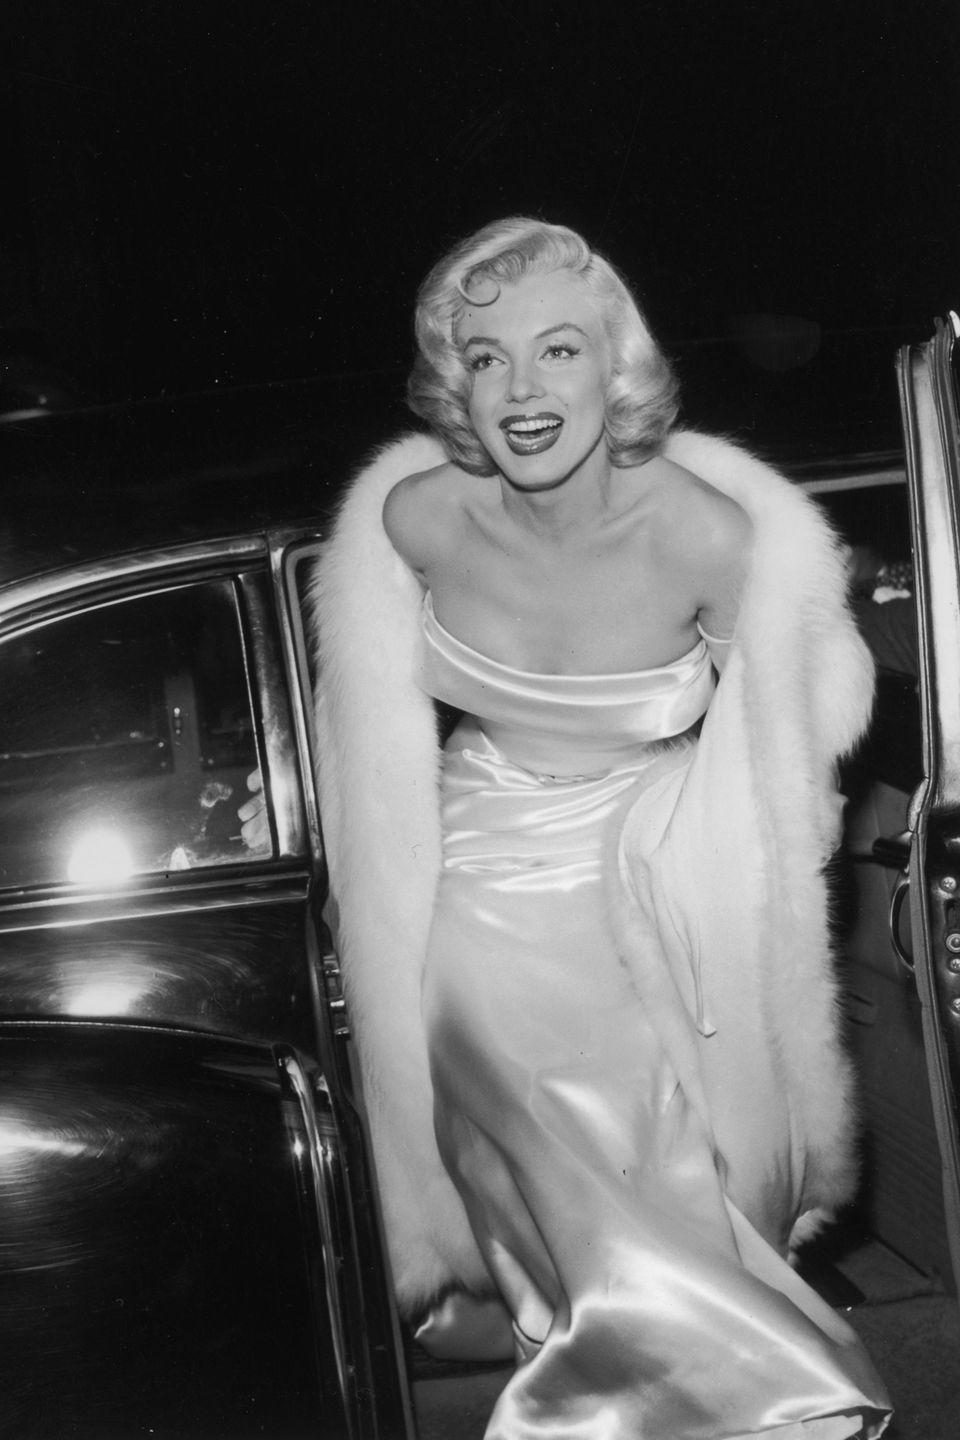 <p>Arriving at the premiere of <em>There's No Business Like Show Business</em> directed by Walter Lang in a strapless gown and fur coat. </p>